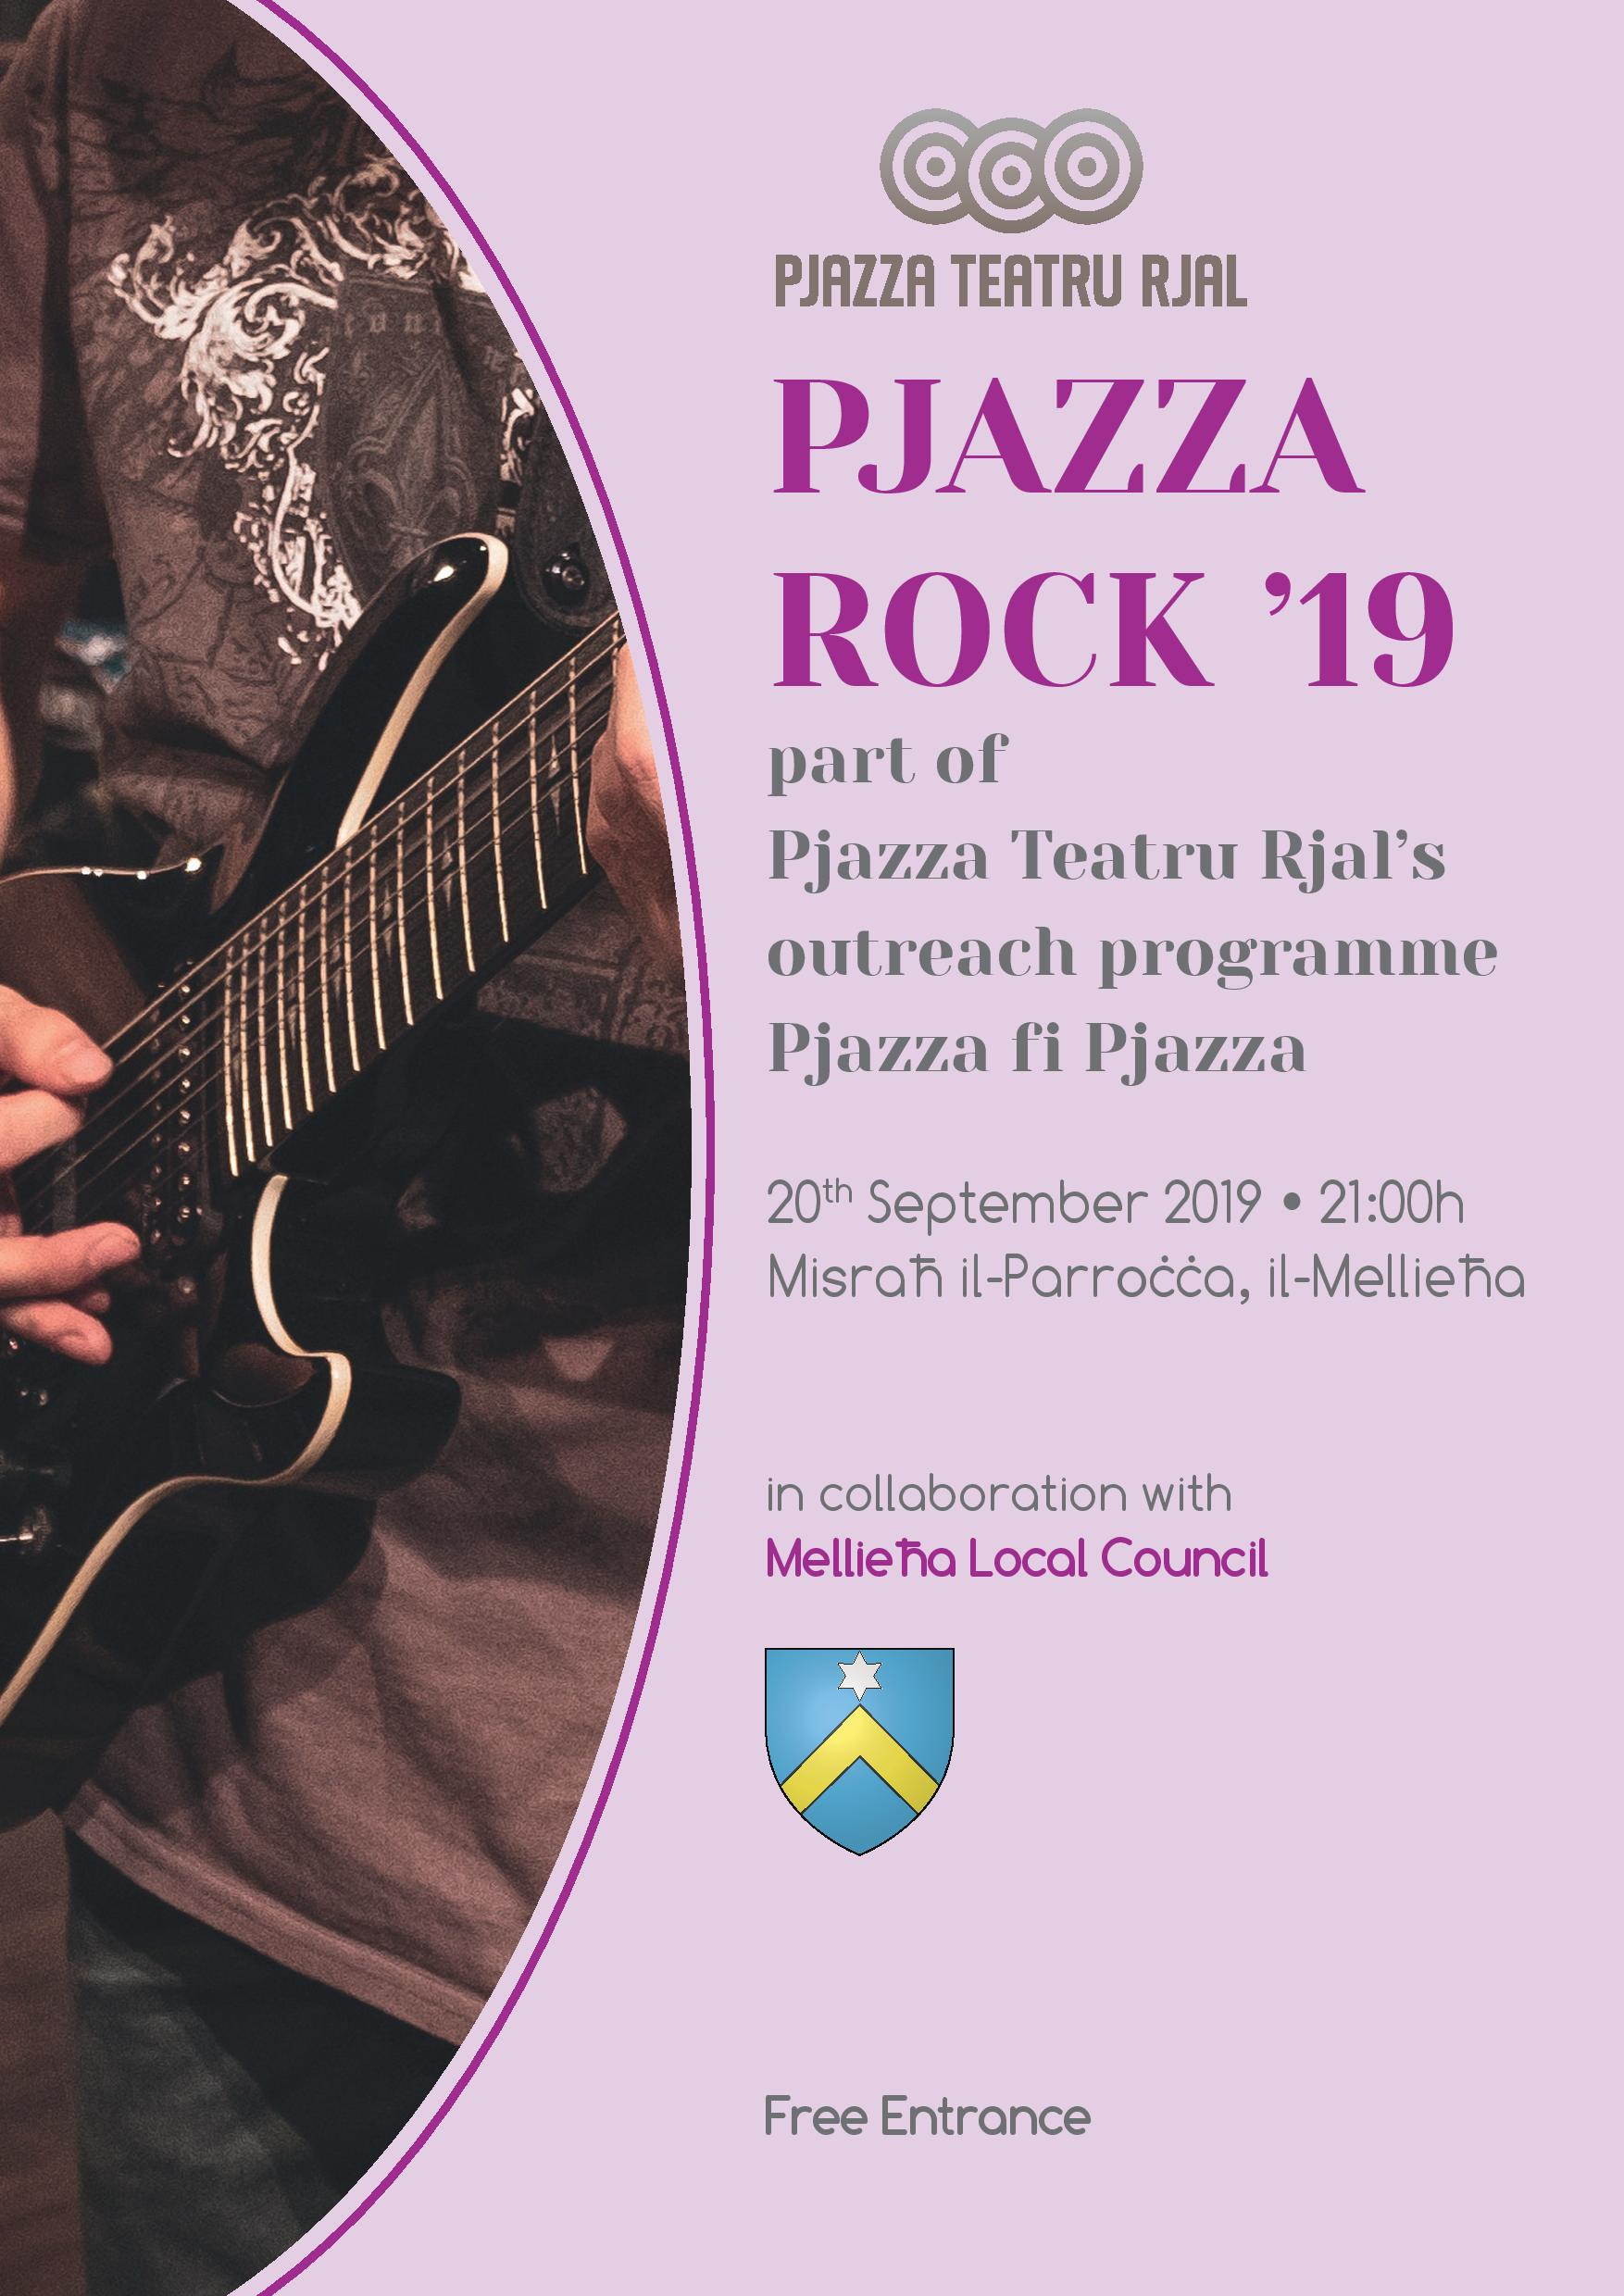 Pjazza Rock 2019